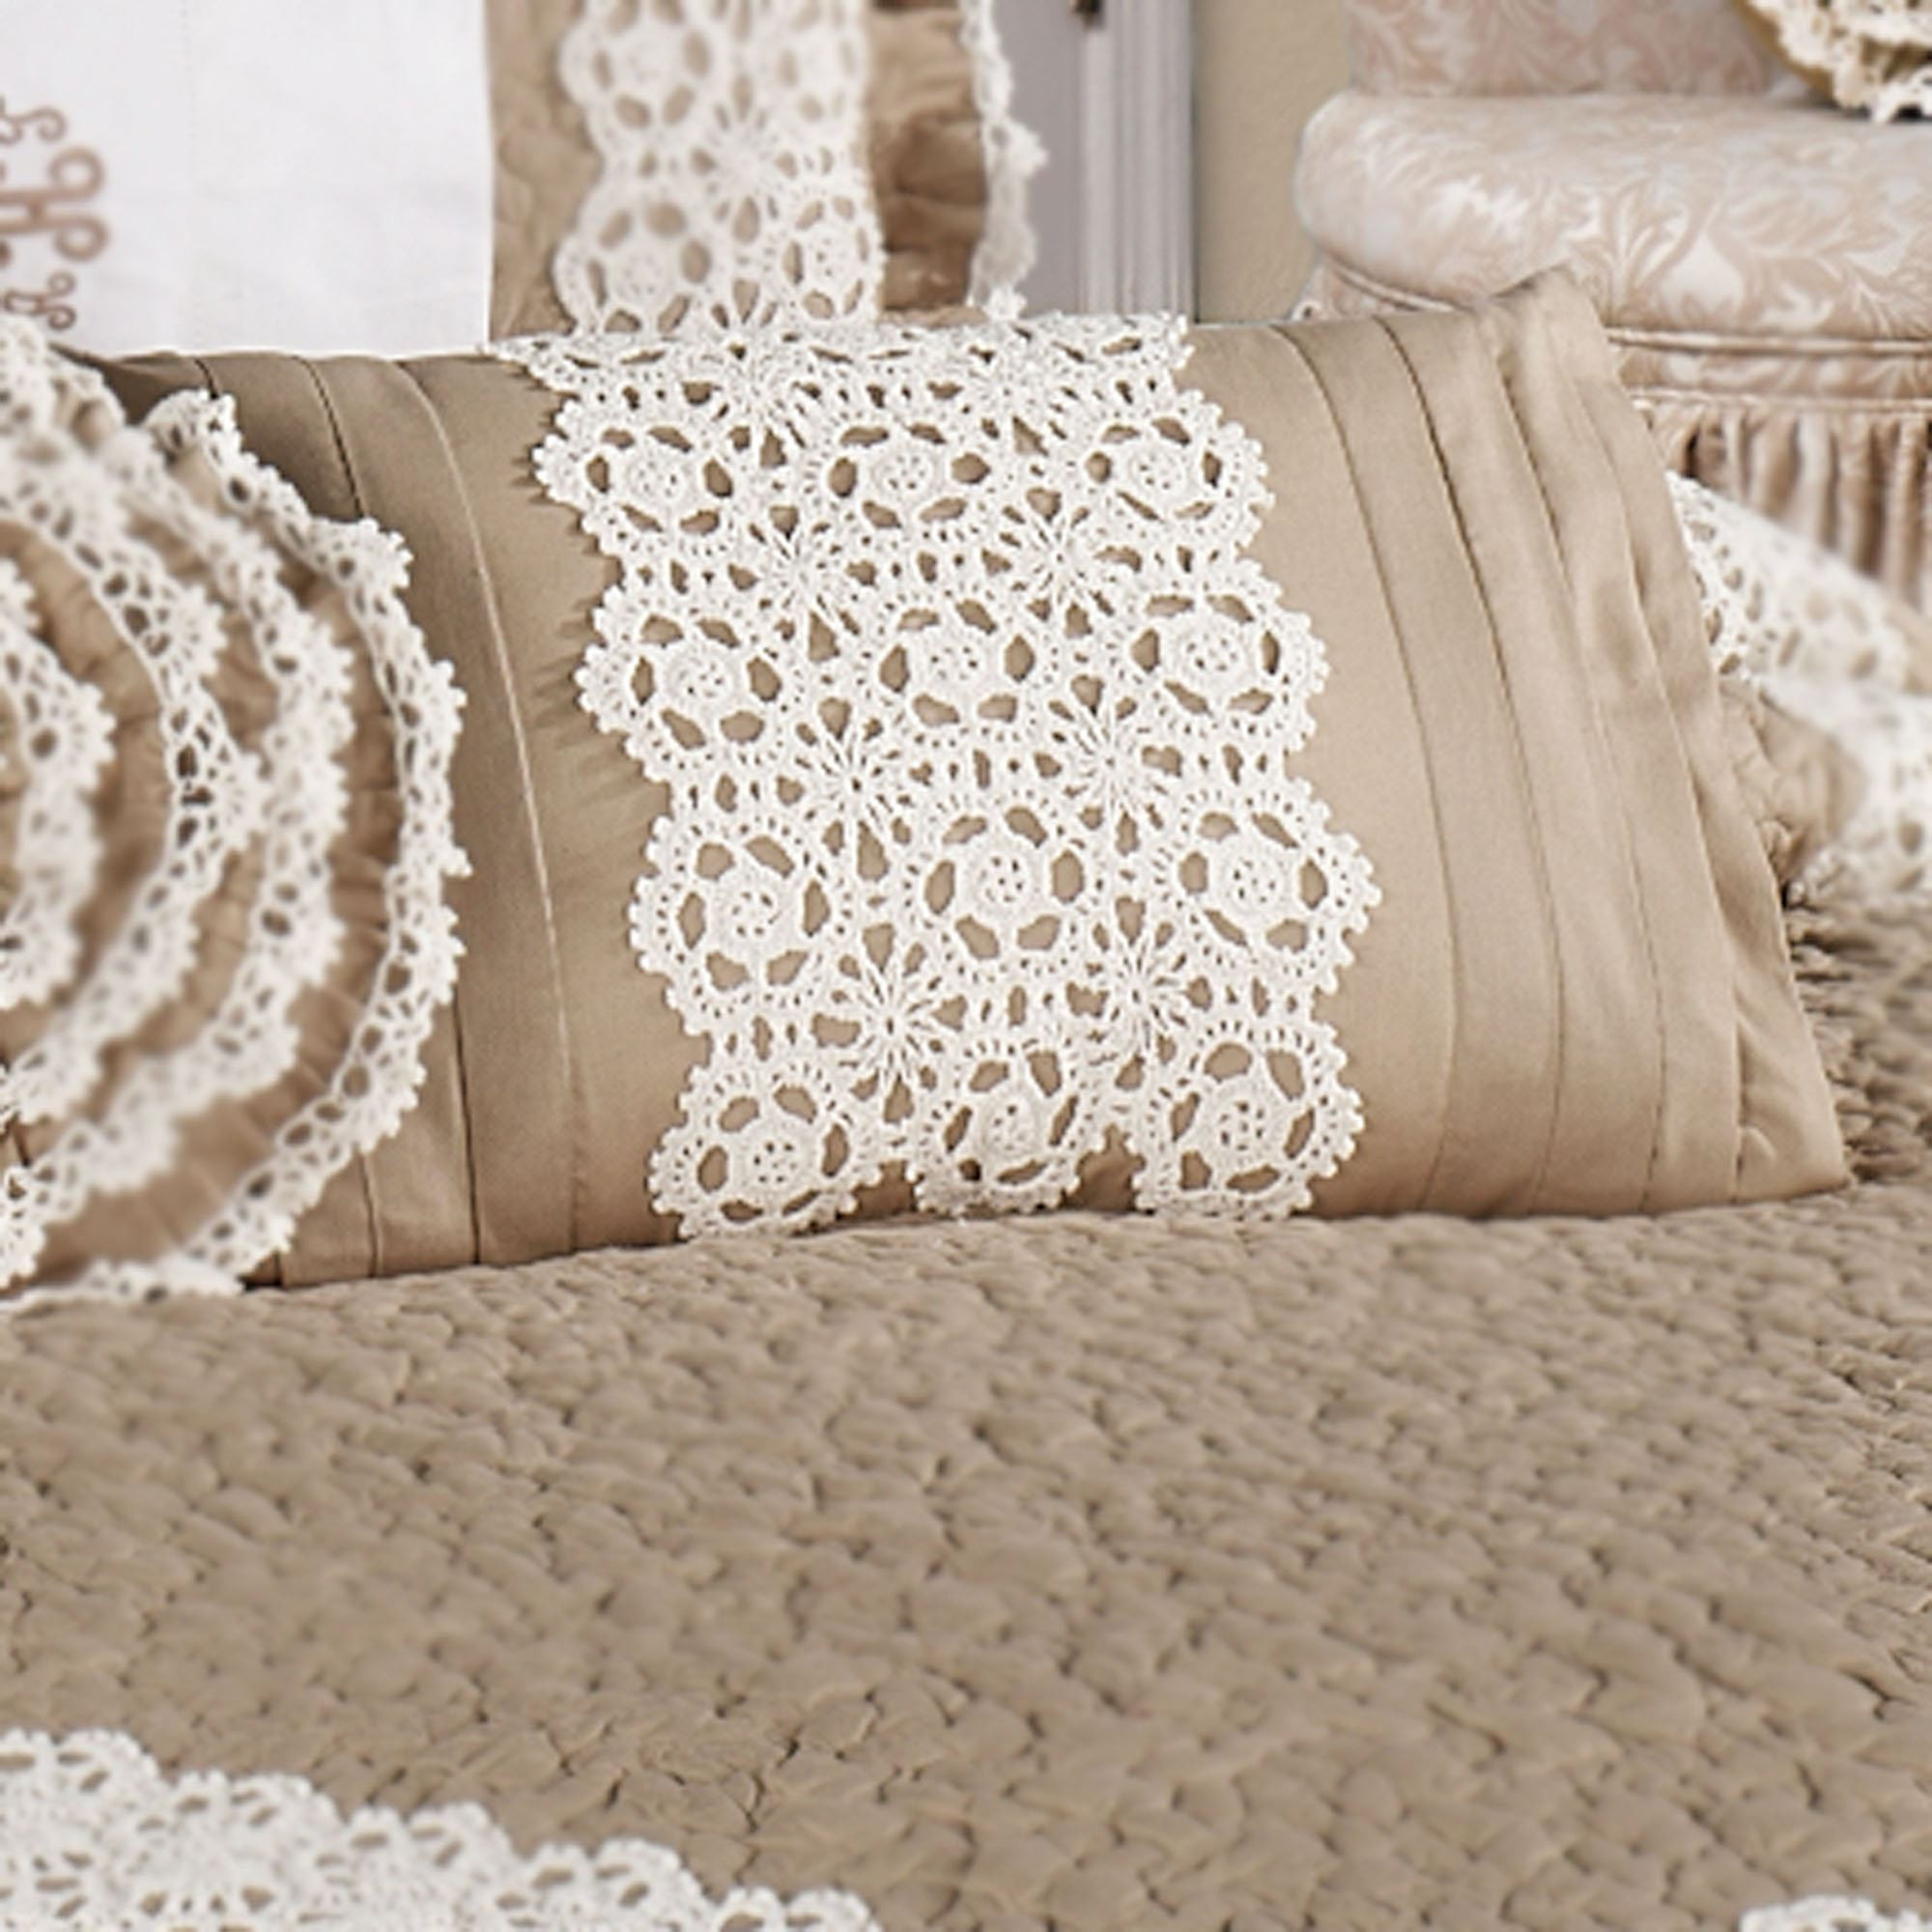 Crochet Bedspread Luxury Antiquity Crochet Bedspread Bedding Of Unique 38 Pics Crochet Bedspread